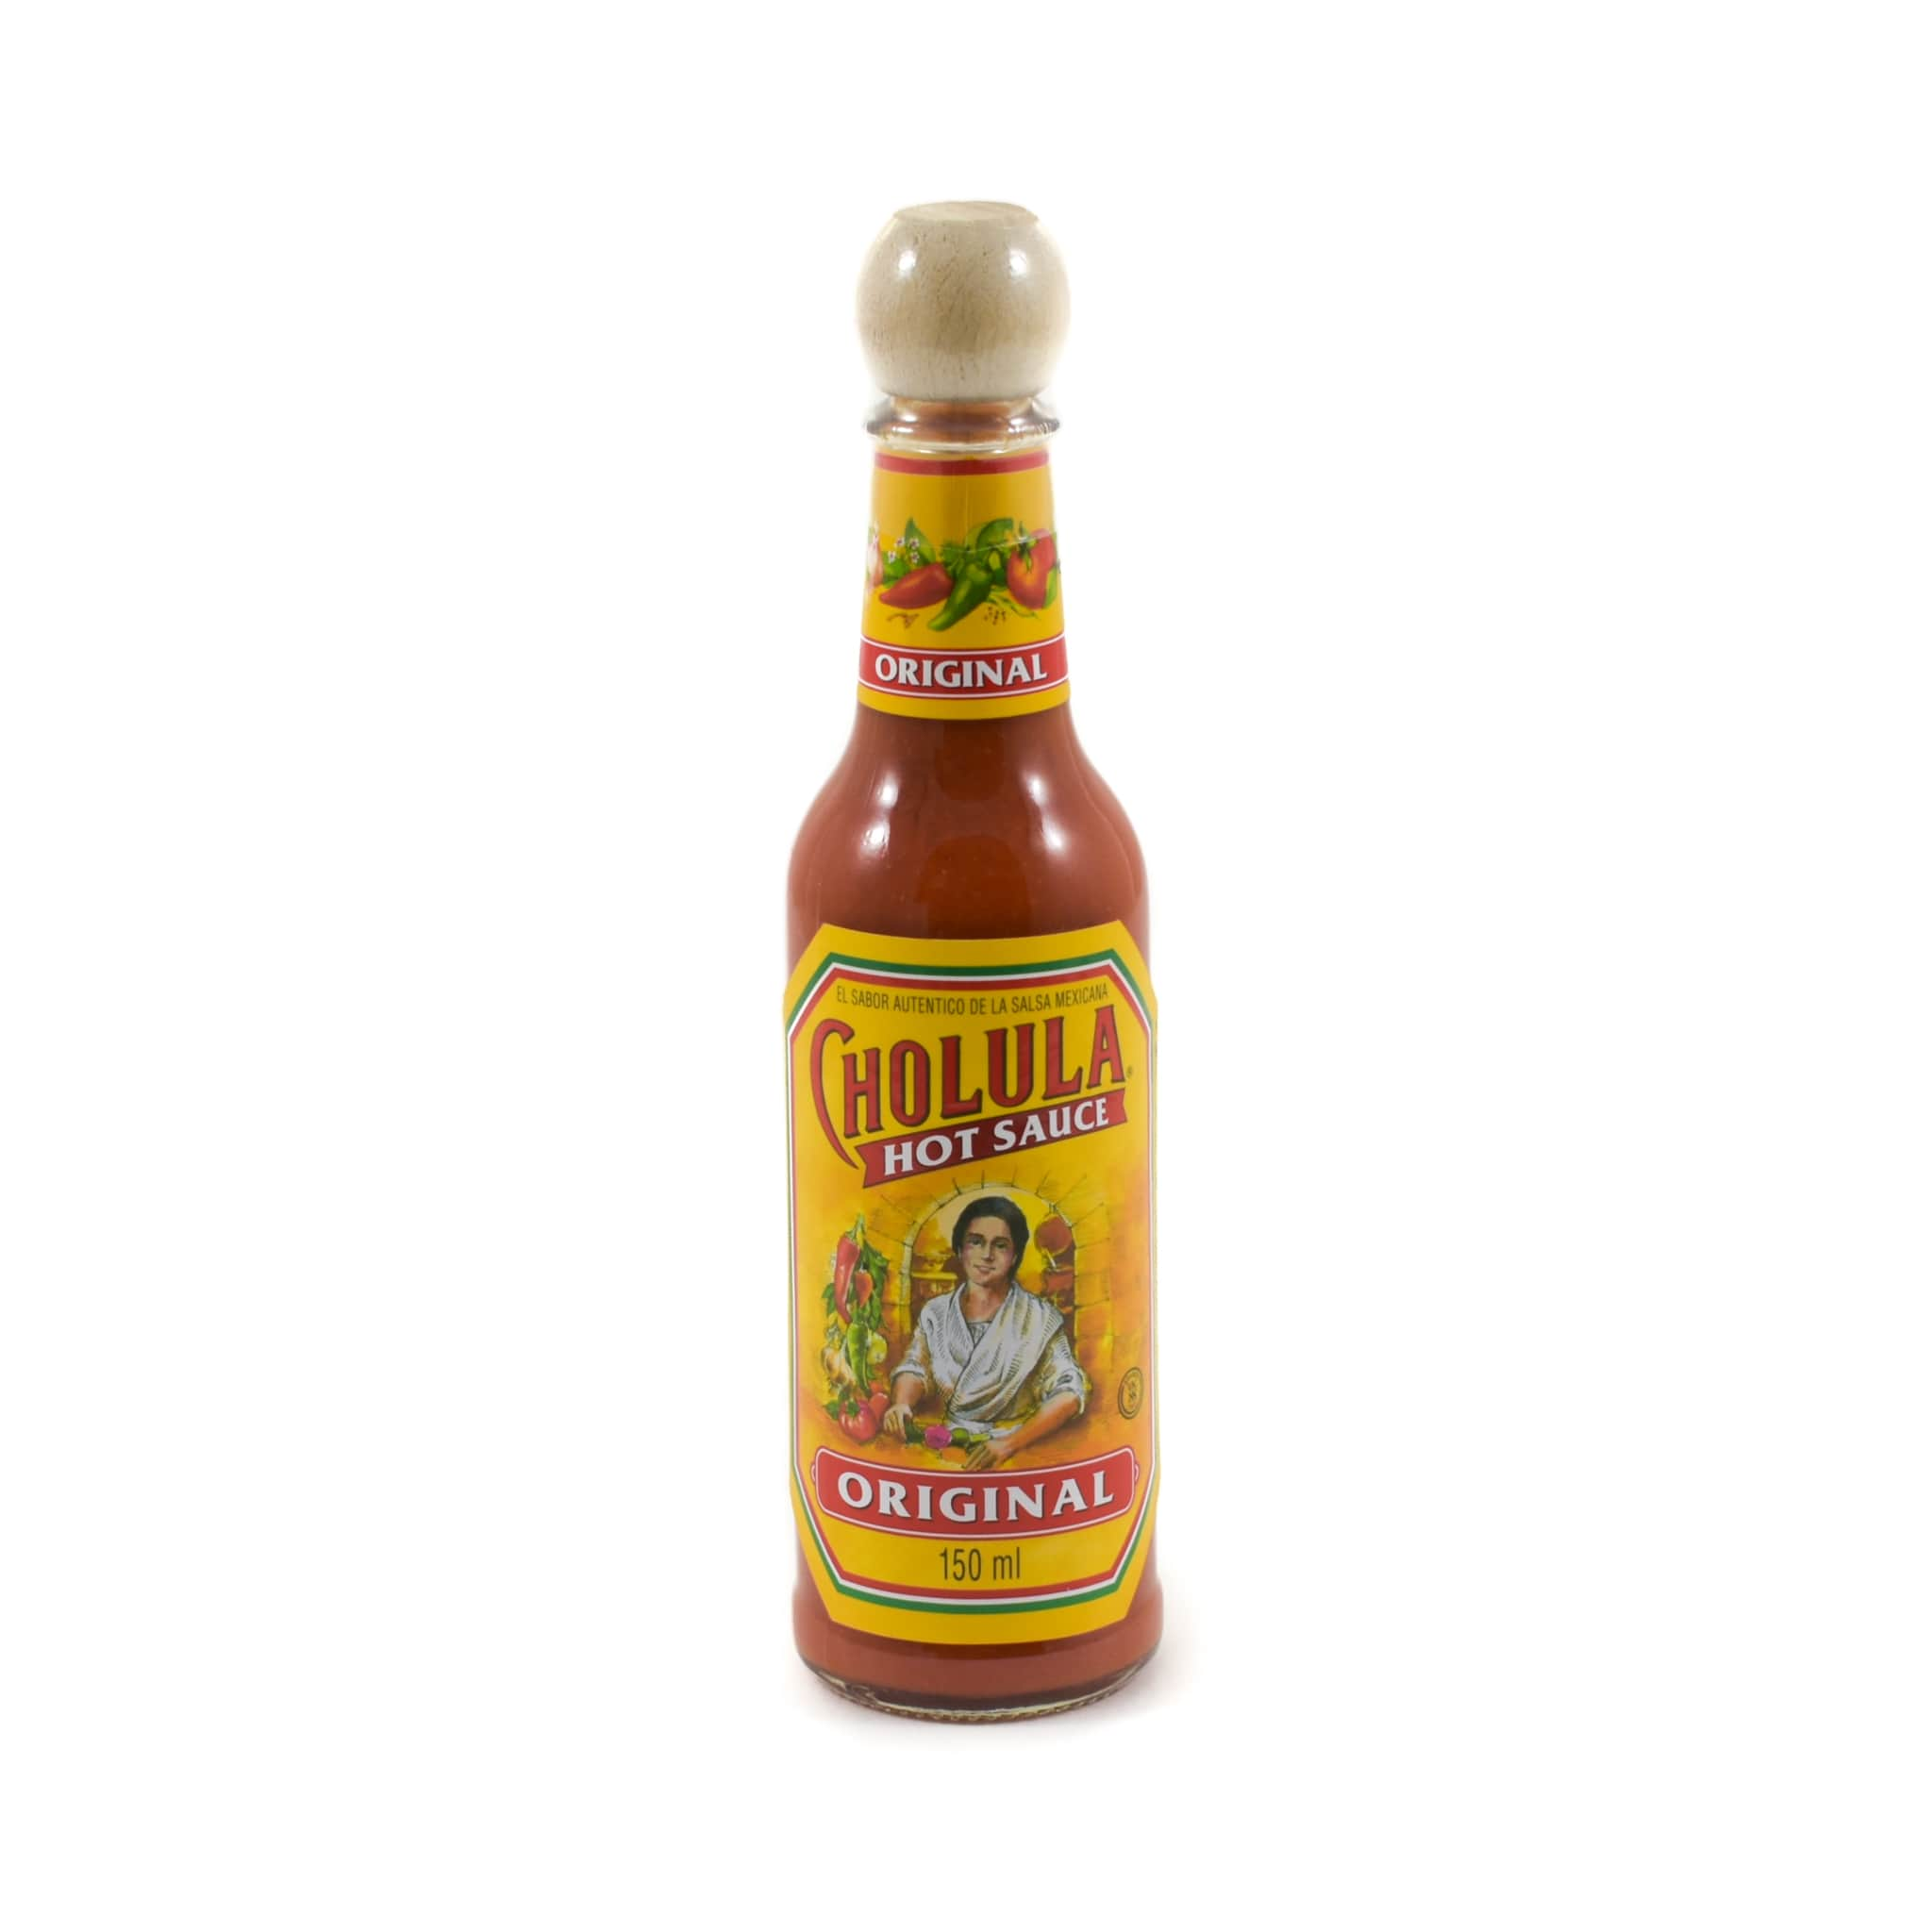 Cholula Original Hot Sauce 150ml Mexican Food and Cooking